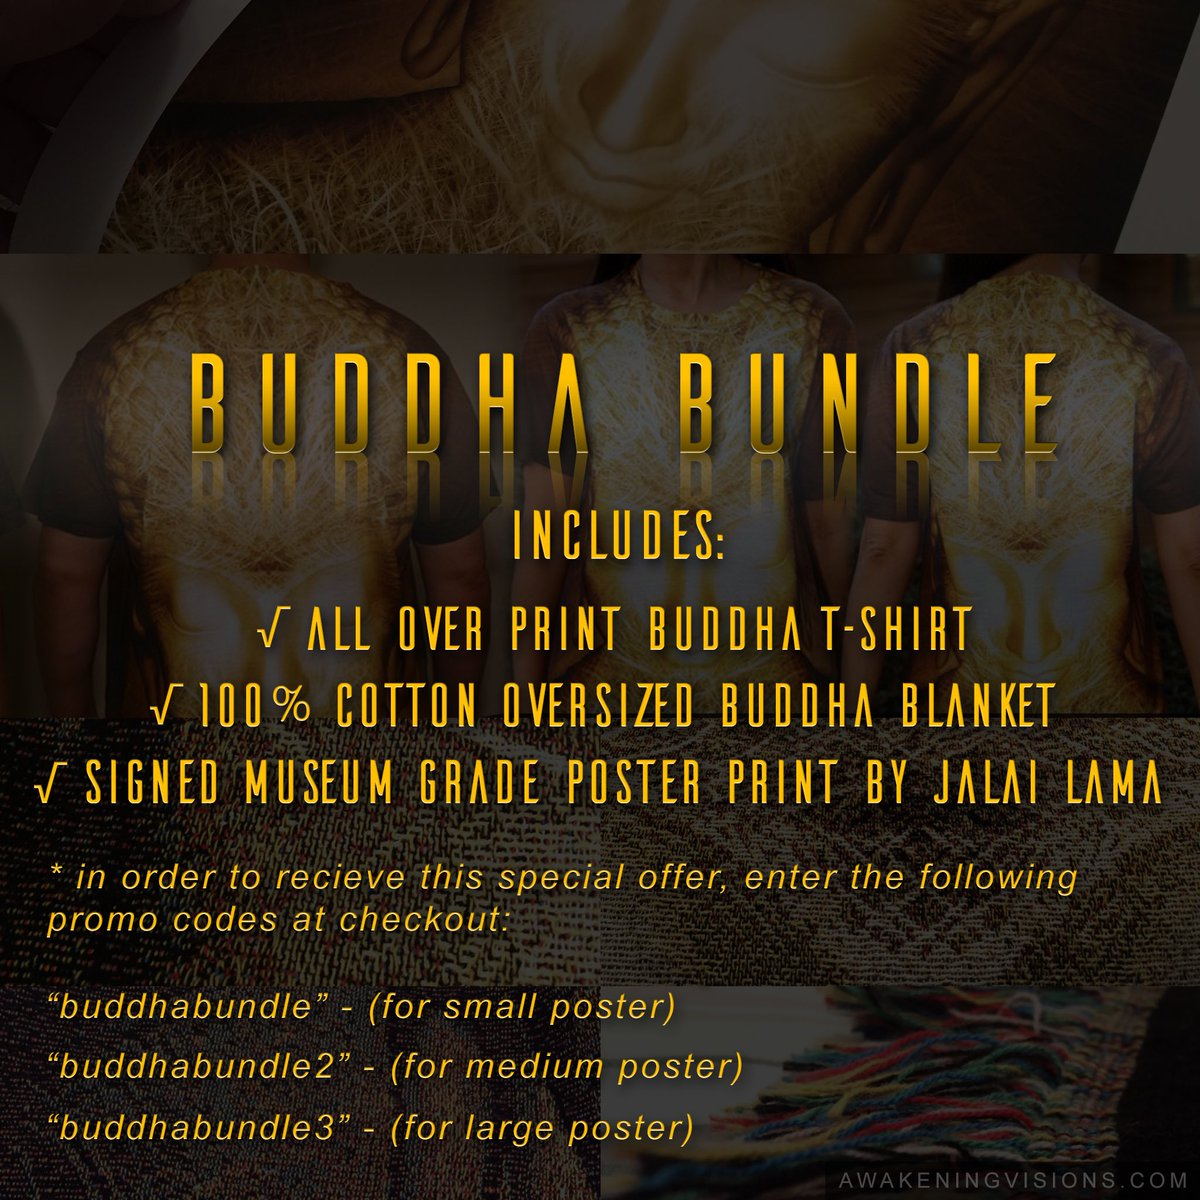 Buddha Quotes On Twitter Thank You All So Much For The Beautiful